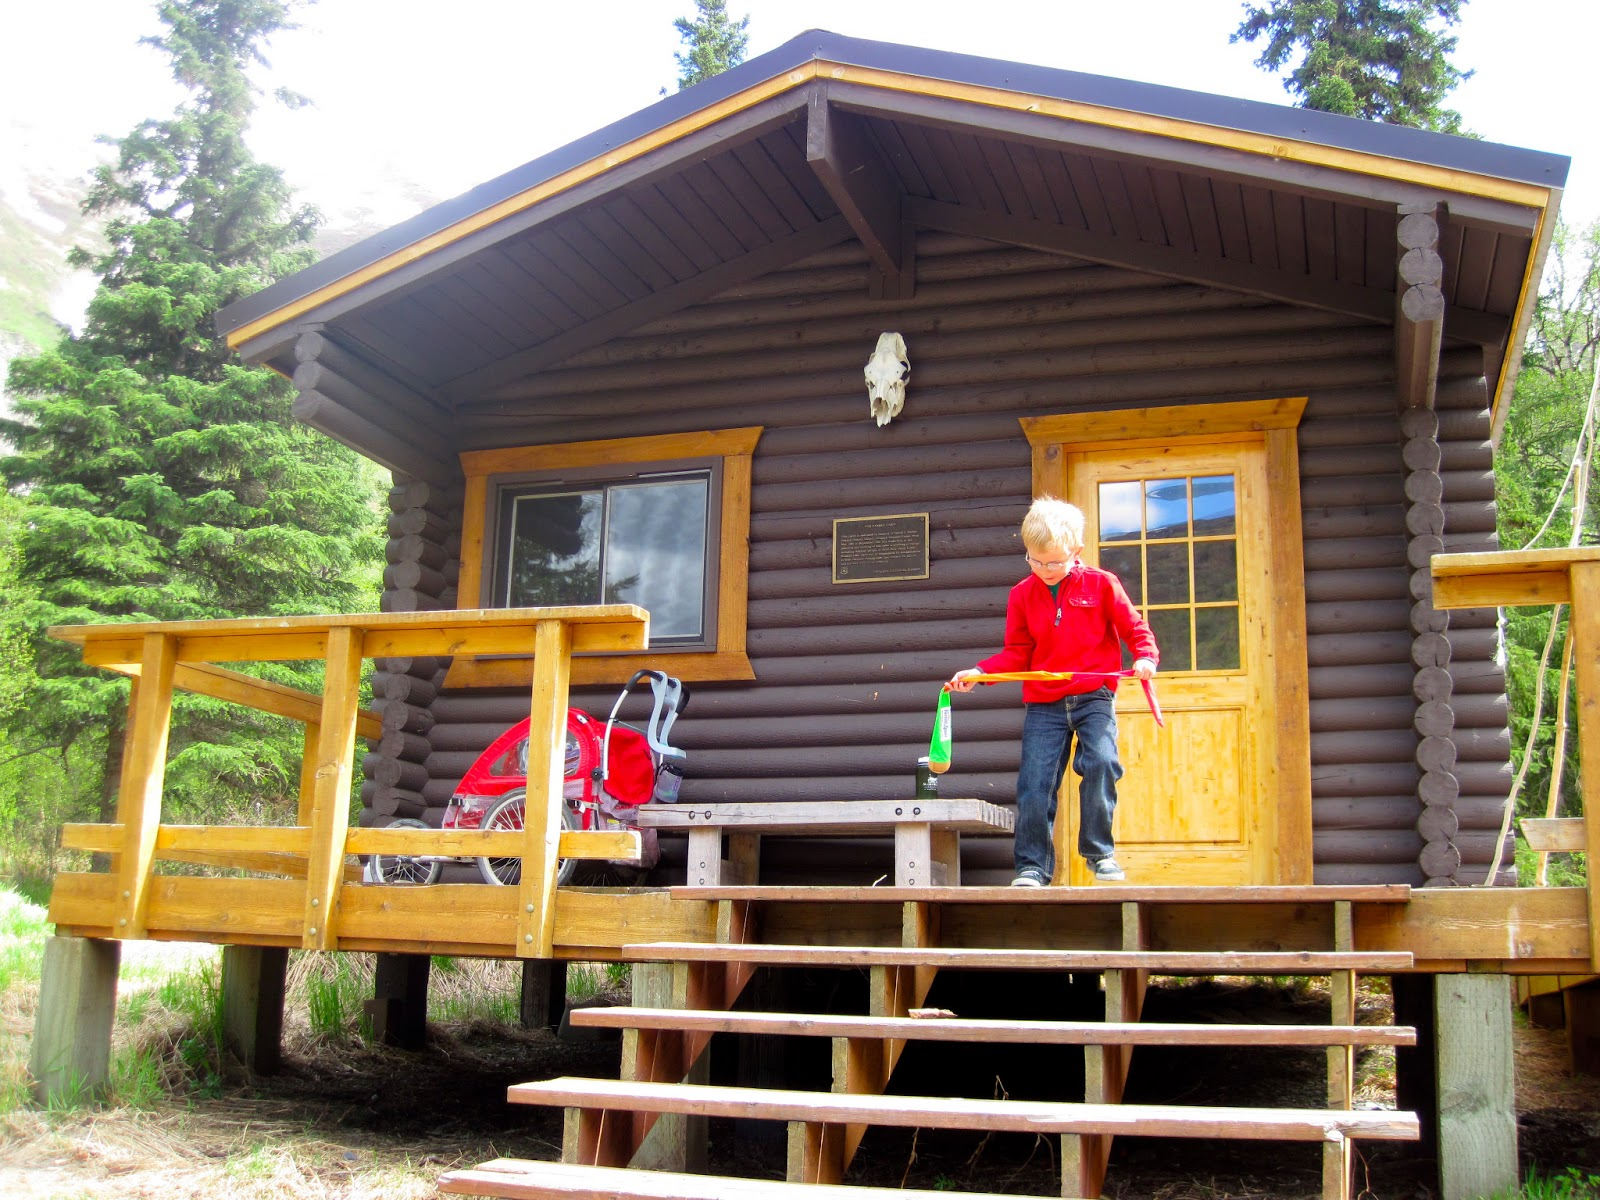 Cabin camping 101 alaska public media for Nearby campgrounds with cabins